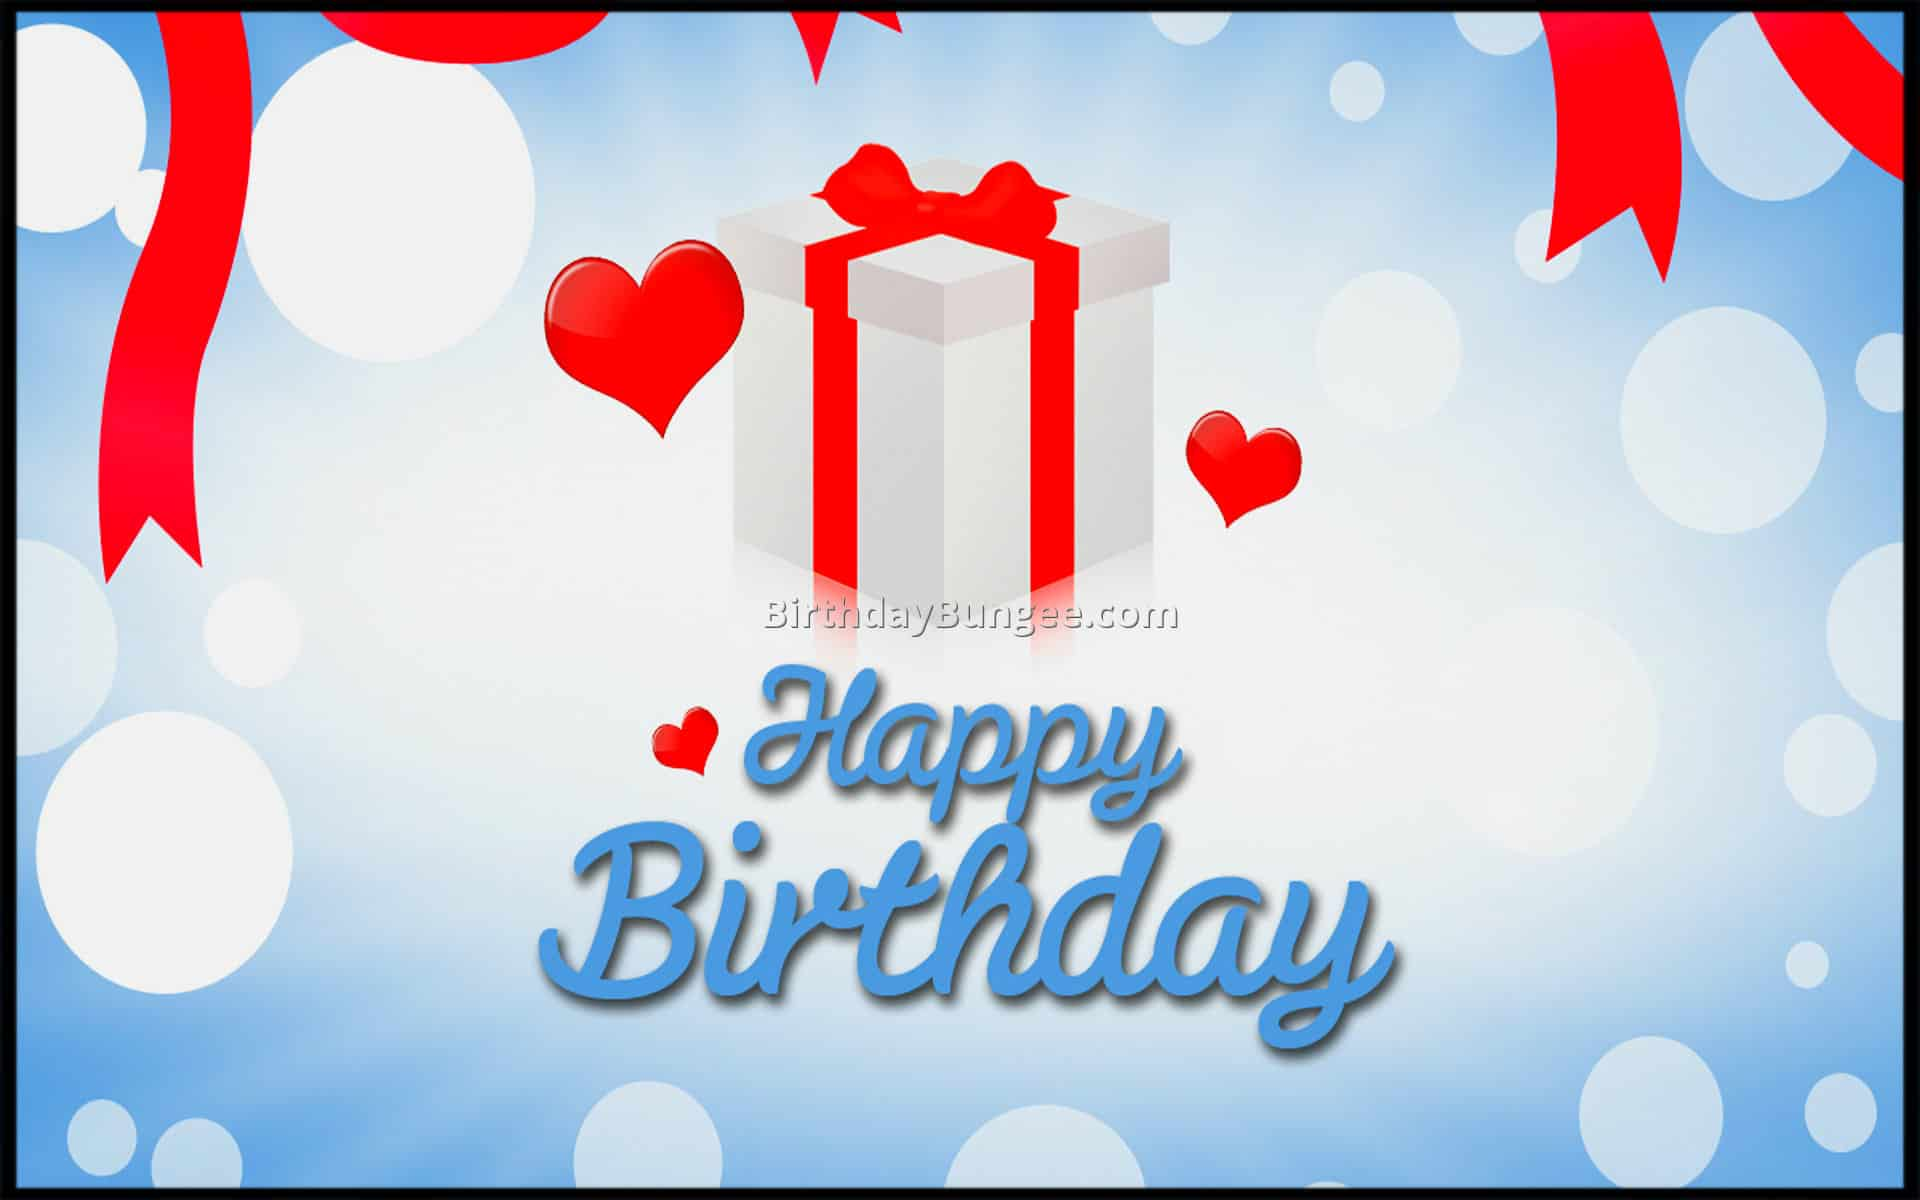 Love Birthday Wishes Wallpaper : Happy Birthday Images for Him - Bing images